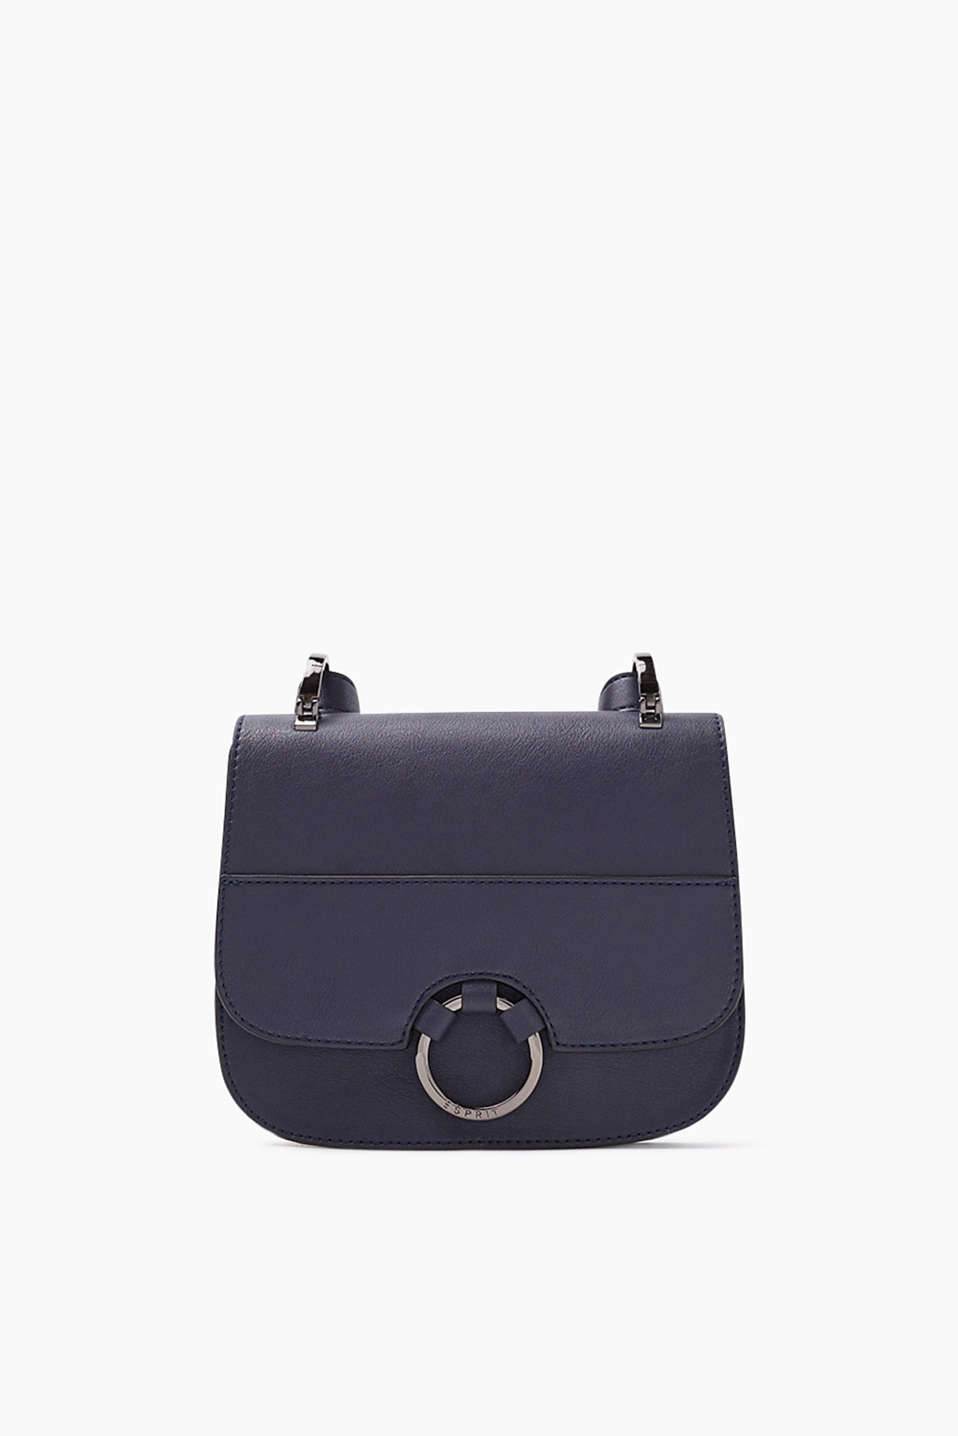 Esprit - Shoulder bag in imitation leather